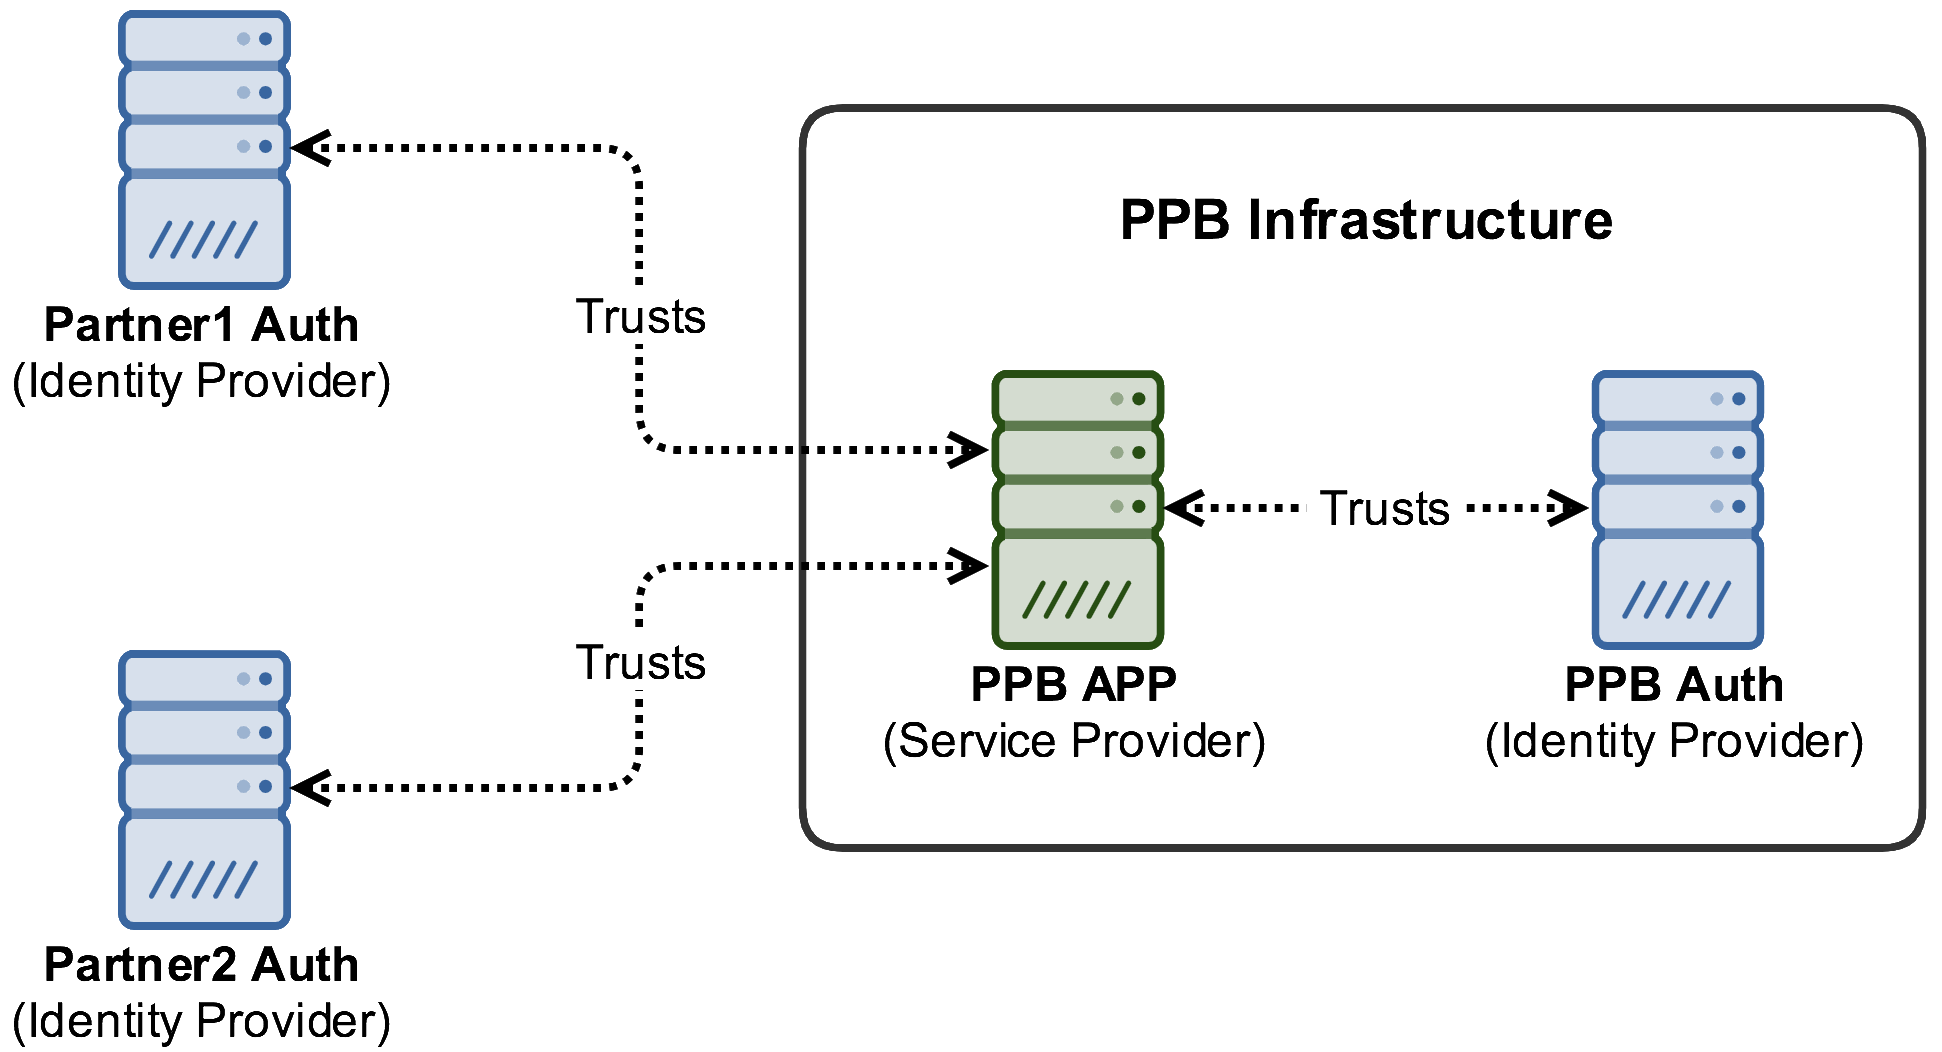 SAML 2.0 trust relationships of a PPB Web APP